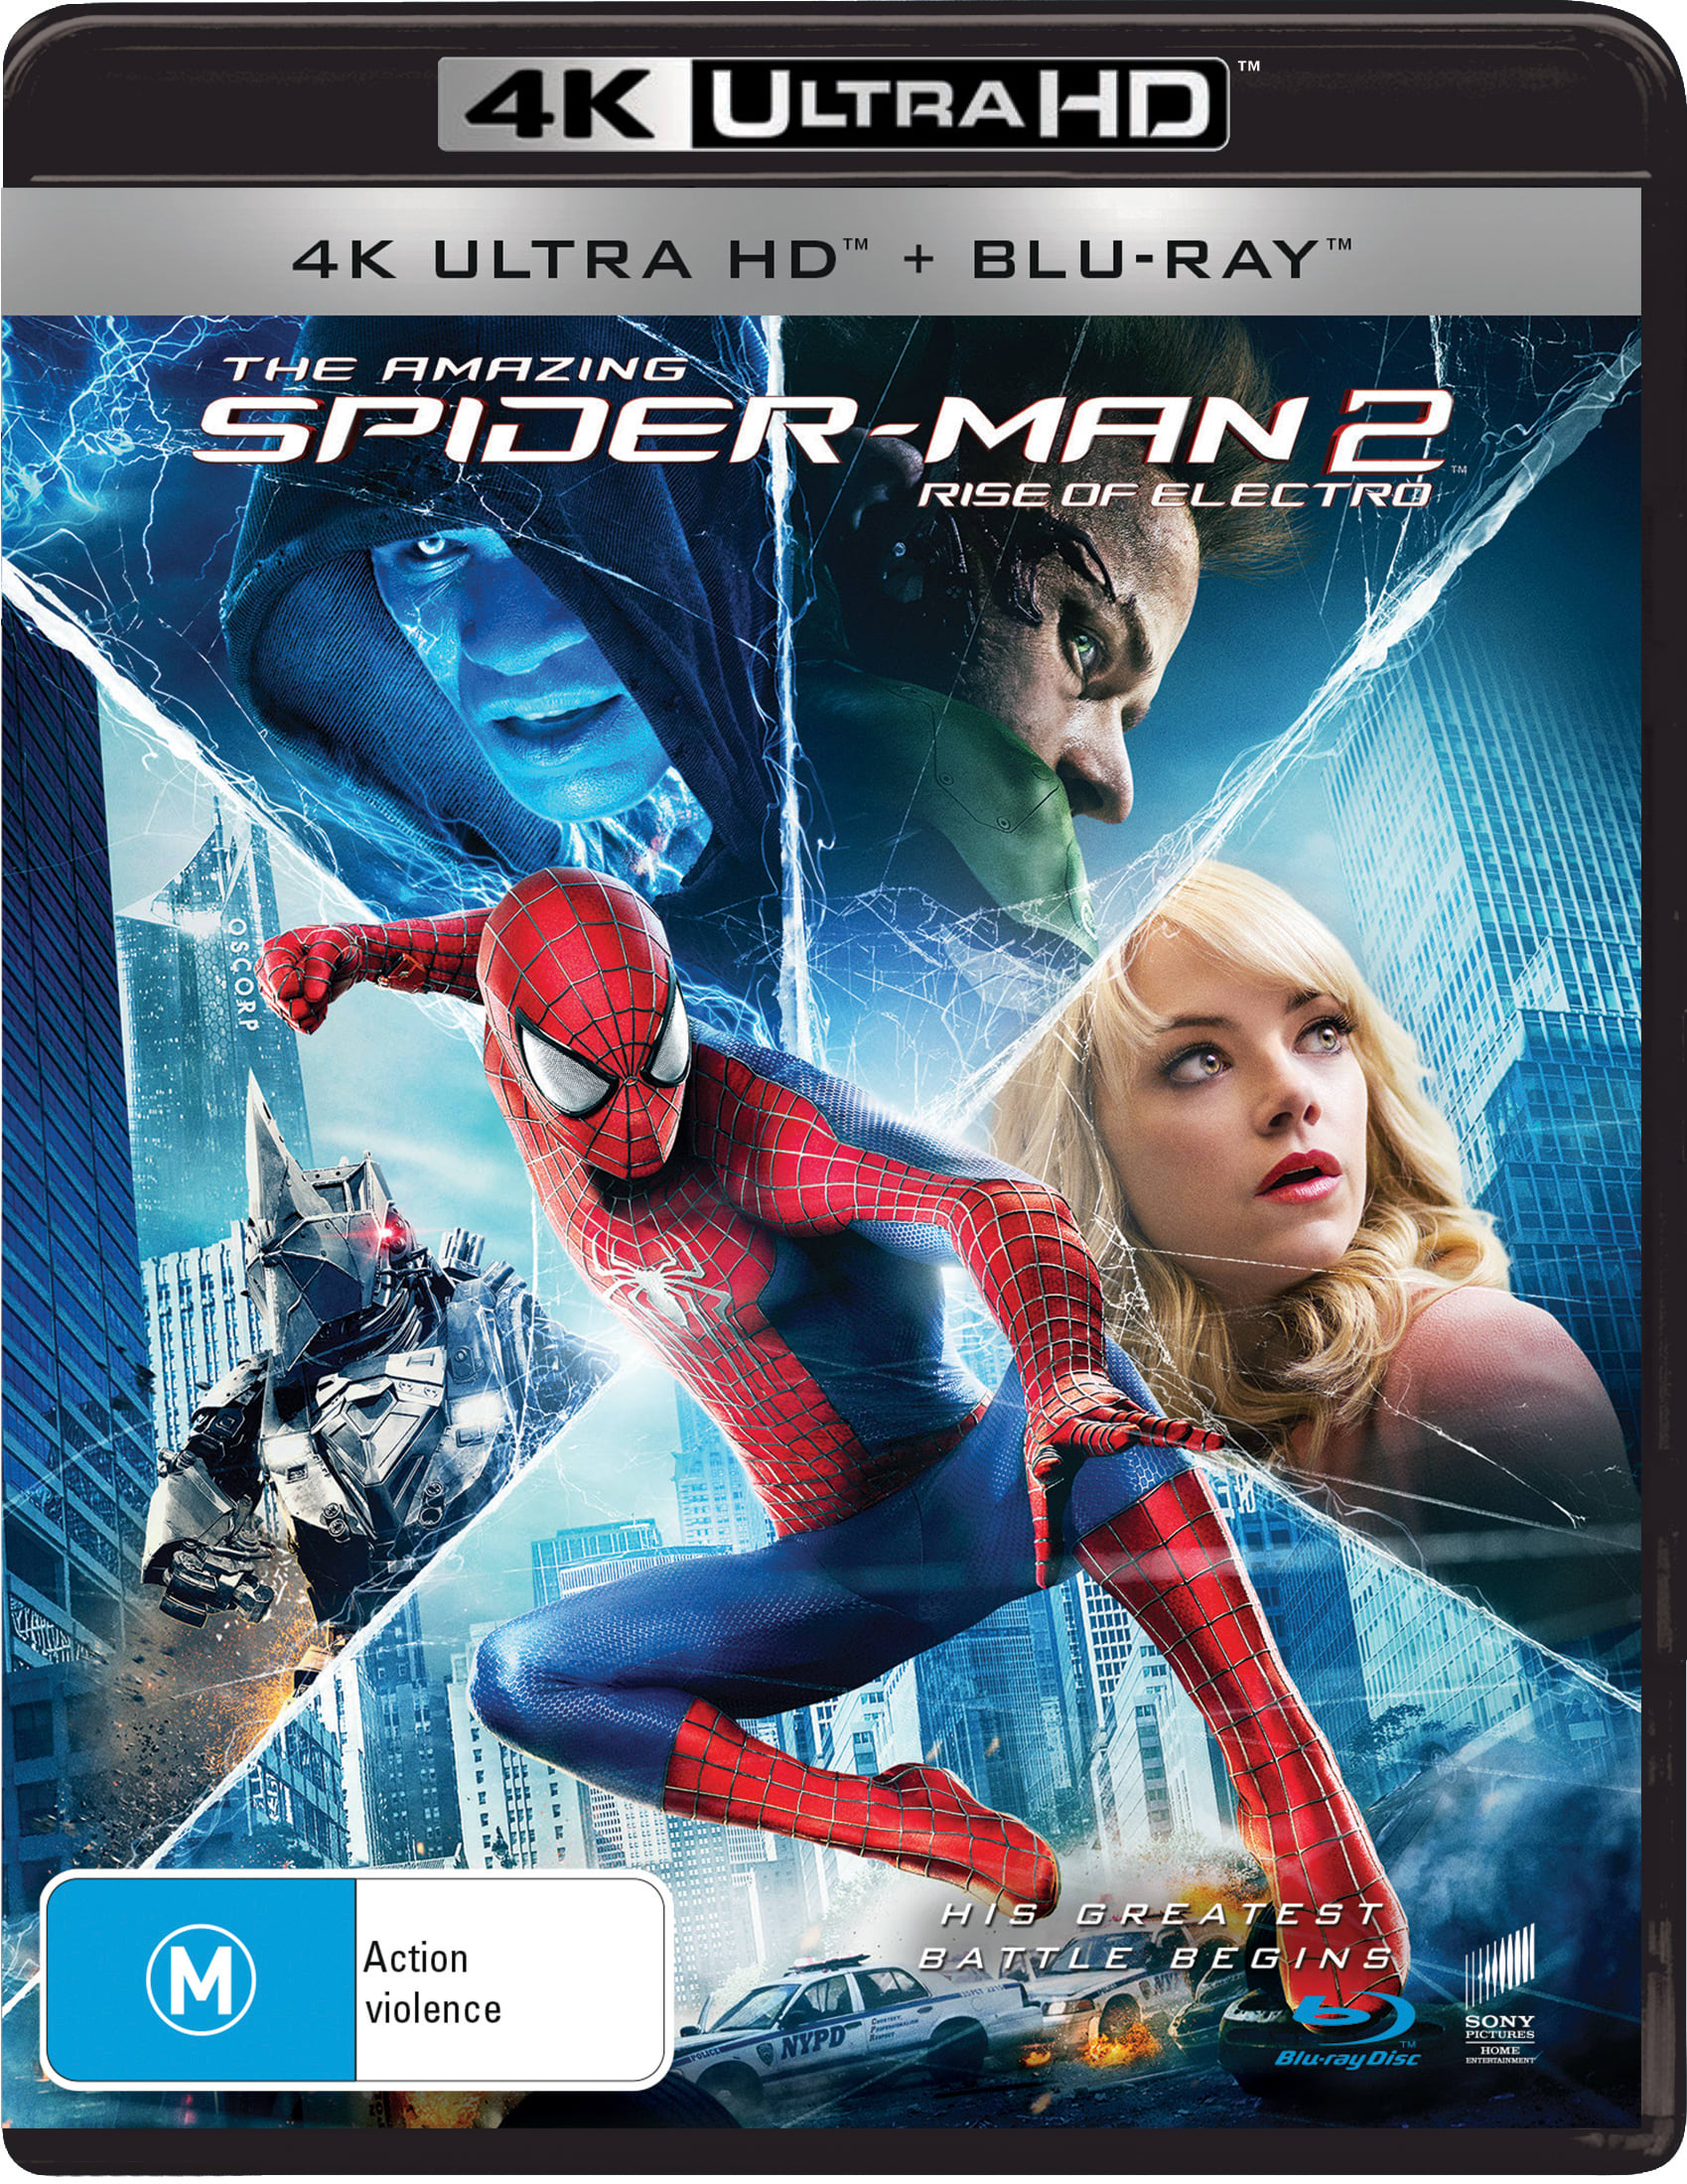 The Amazing Spider-Man 2 (4K Ultra HD + Blu-ray) [UHD]